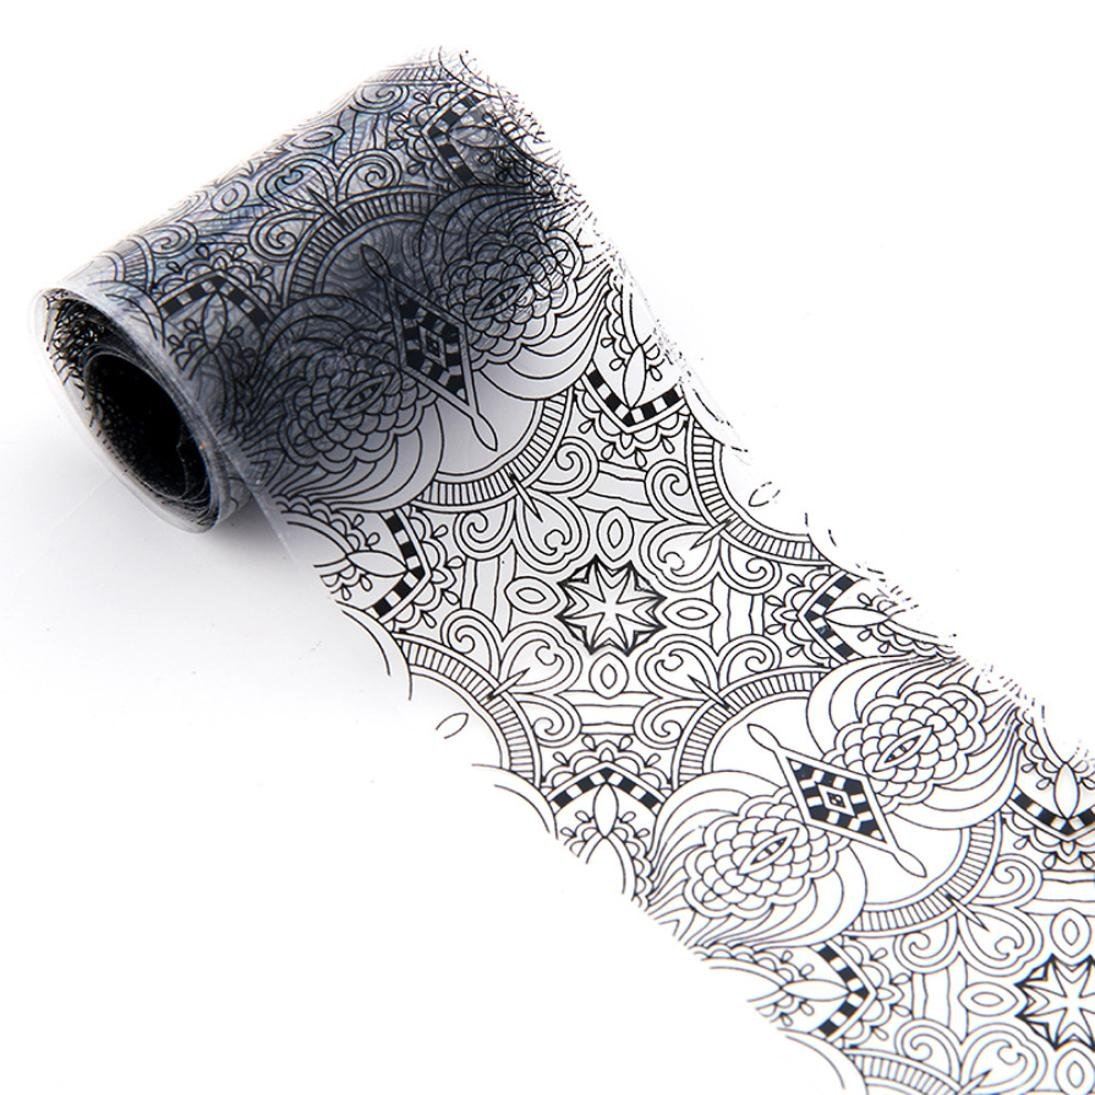 Hot Sale! Quistal 1Roll 4x100 CM Black Lace Starry Sky Design Star Nail Art Foil Stickers Transfer Decal Tips Manicure (F)